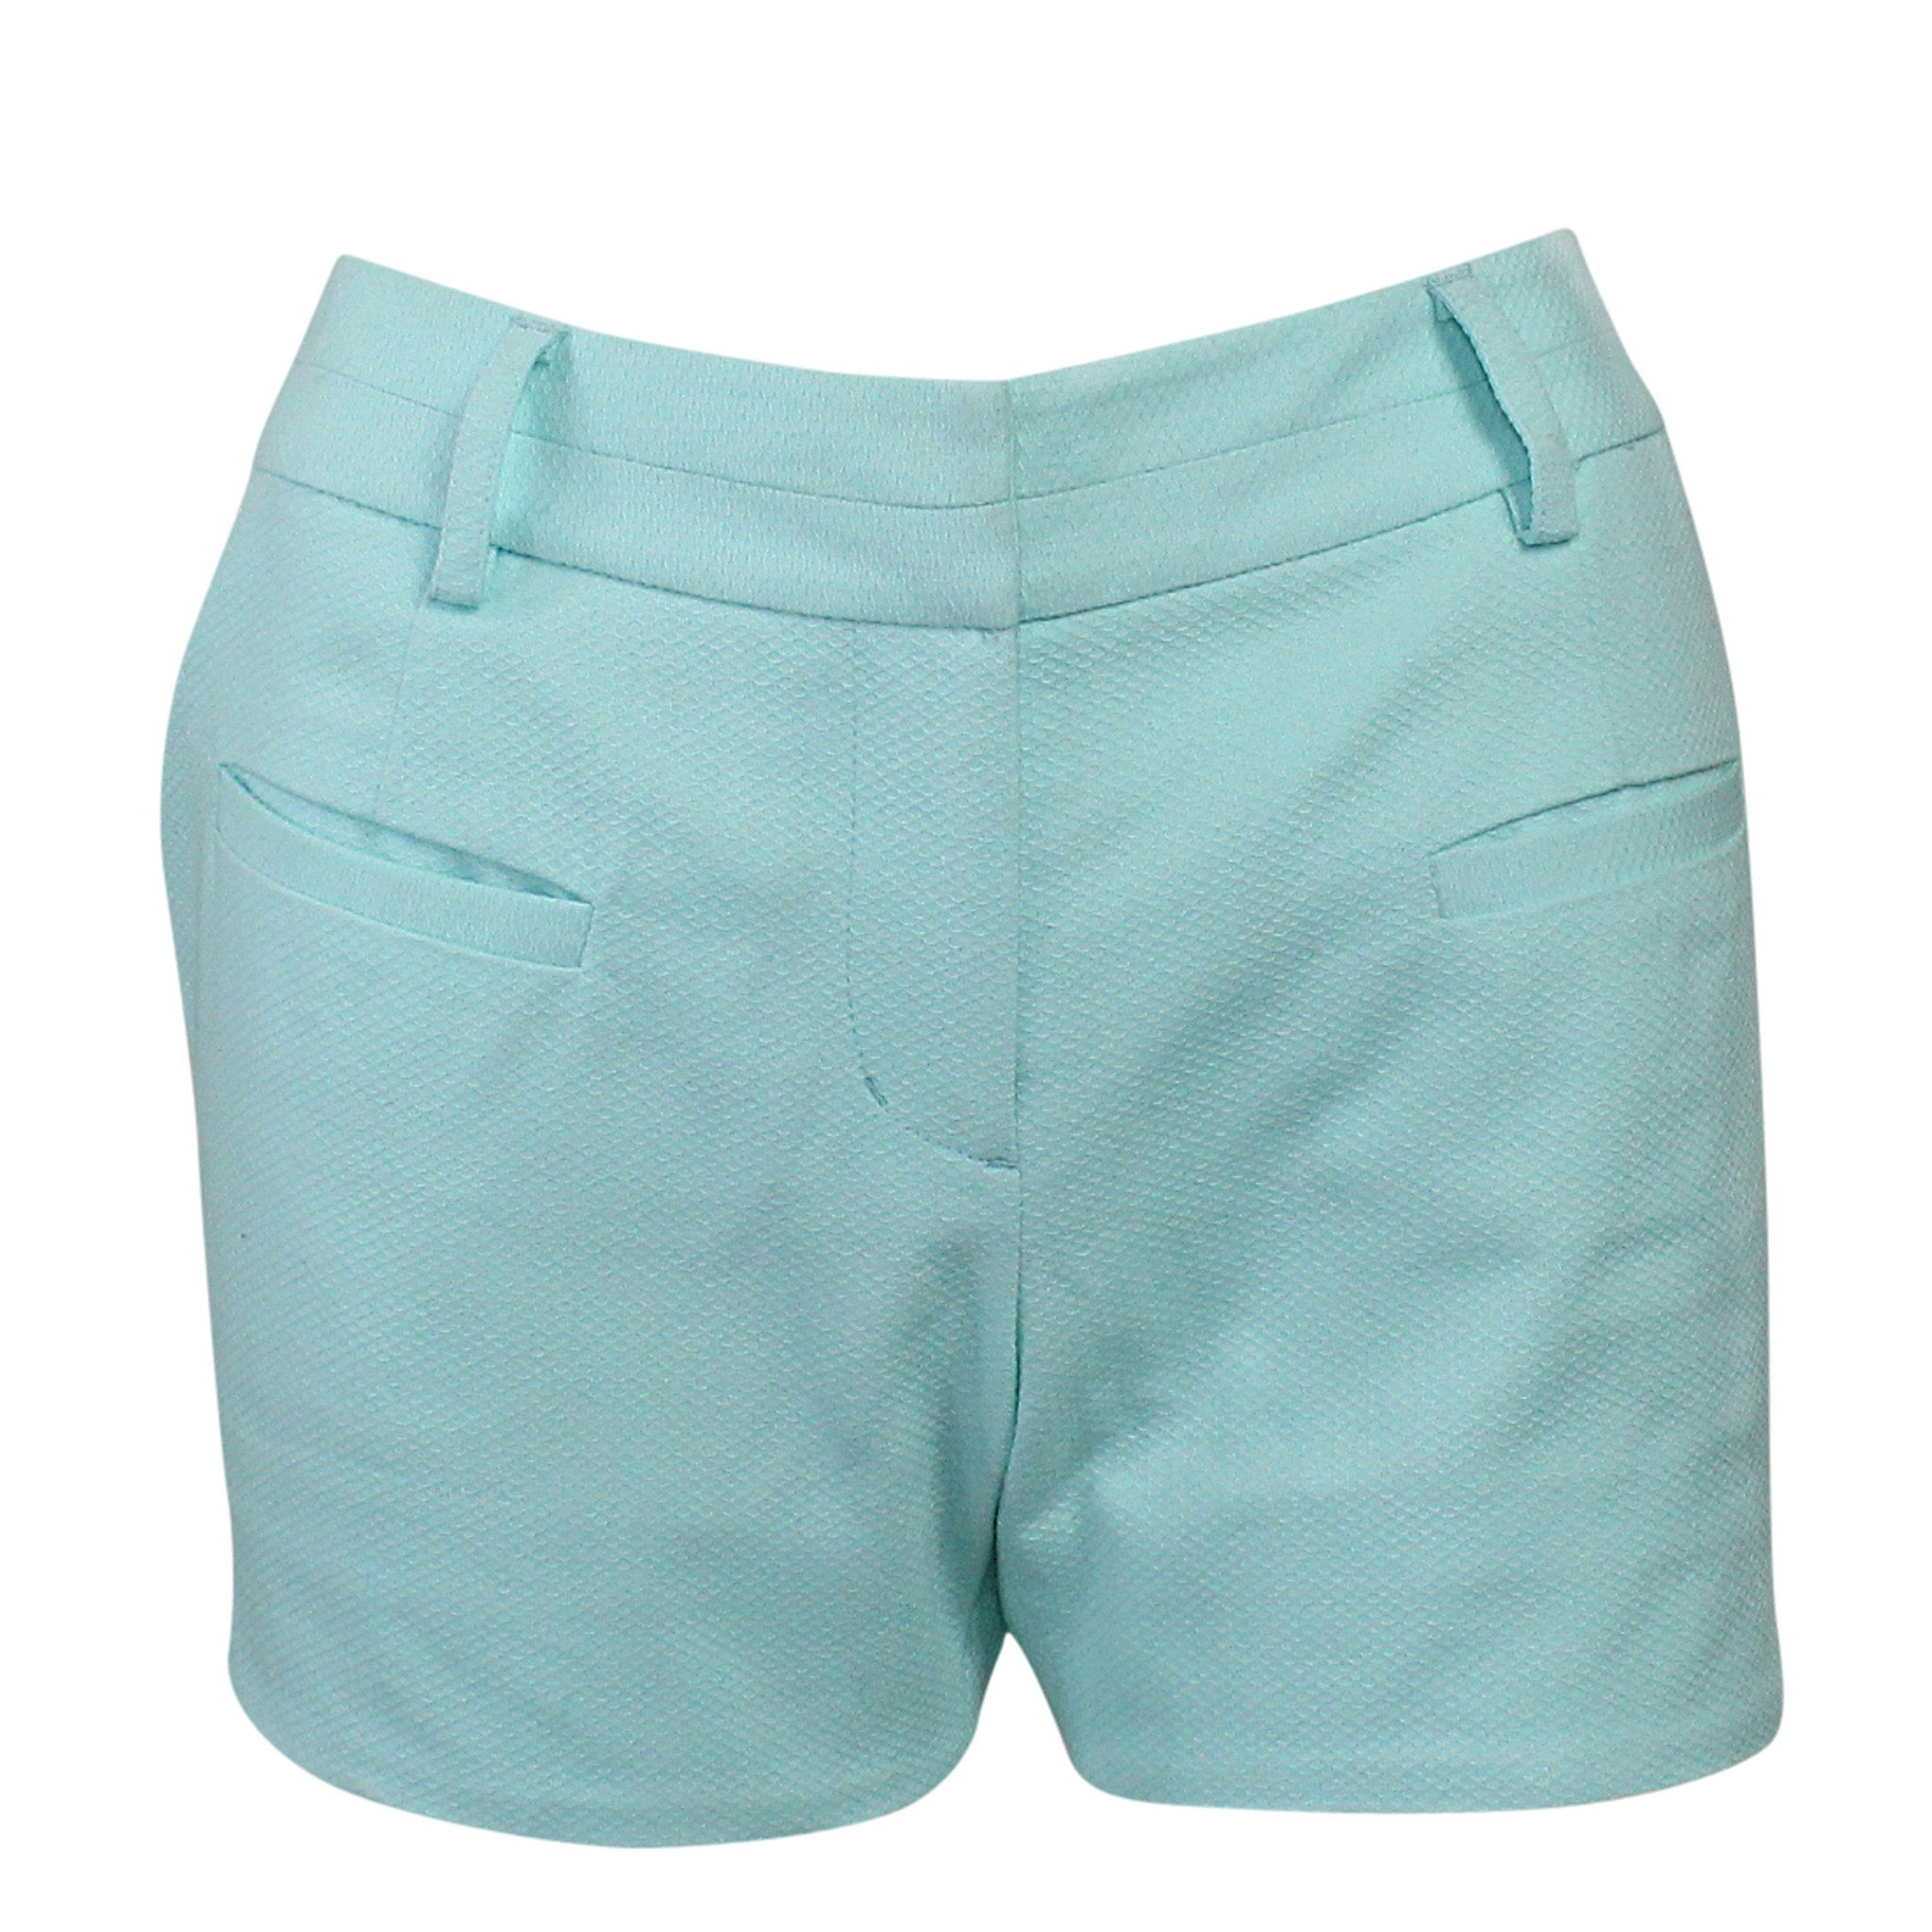 Annie Griffin Womens Lindy Short Seaglass 10